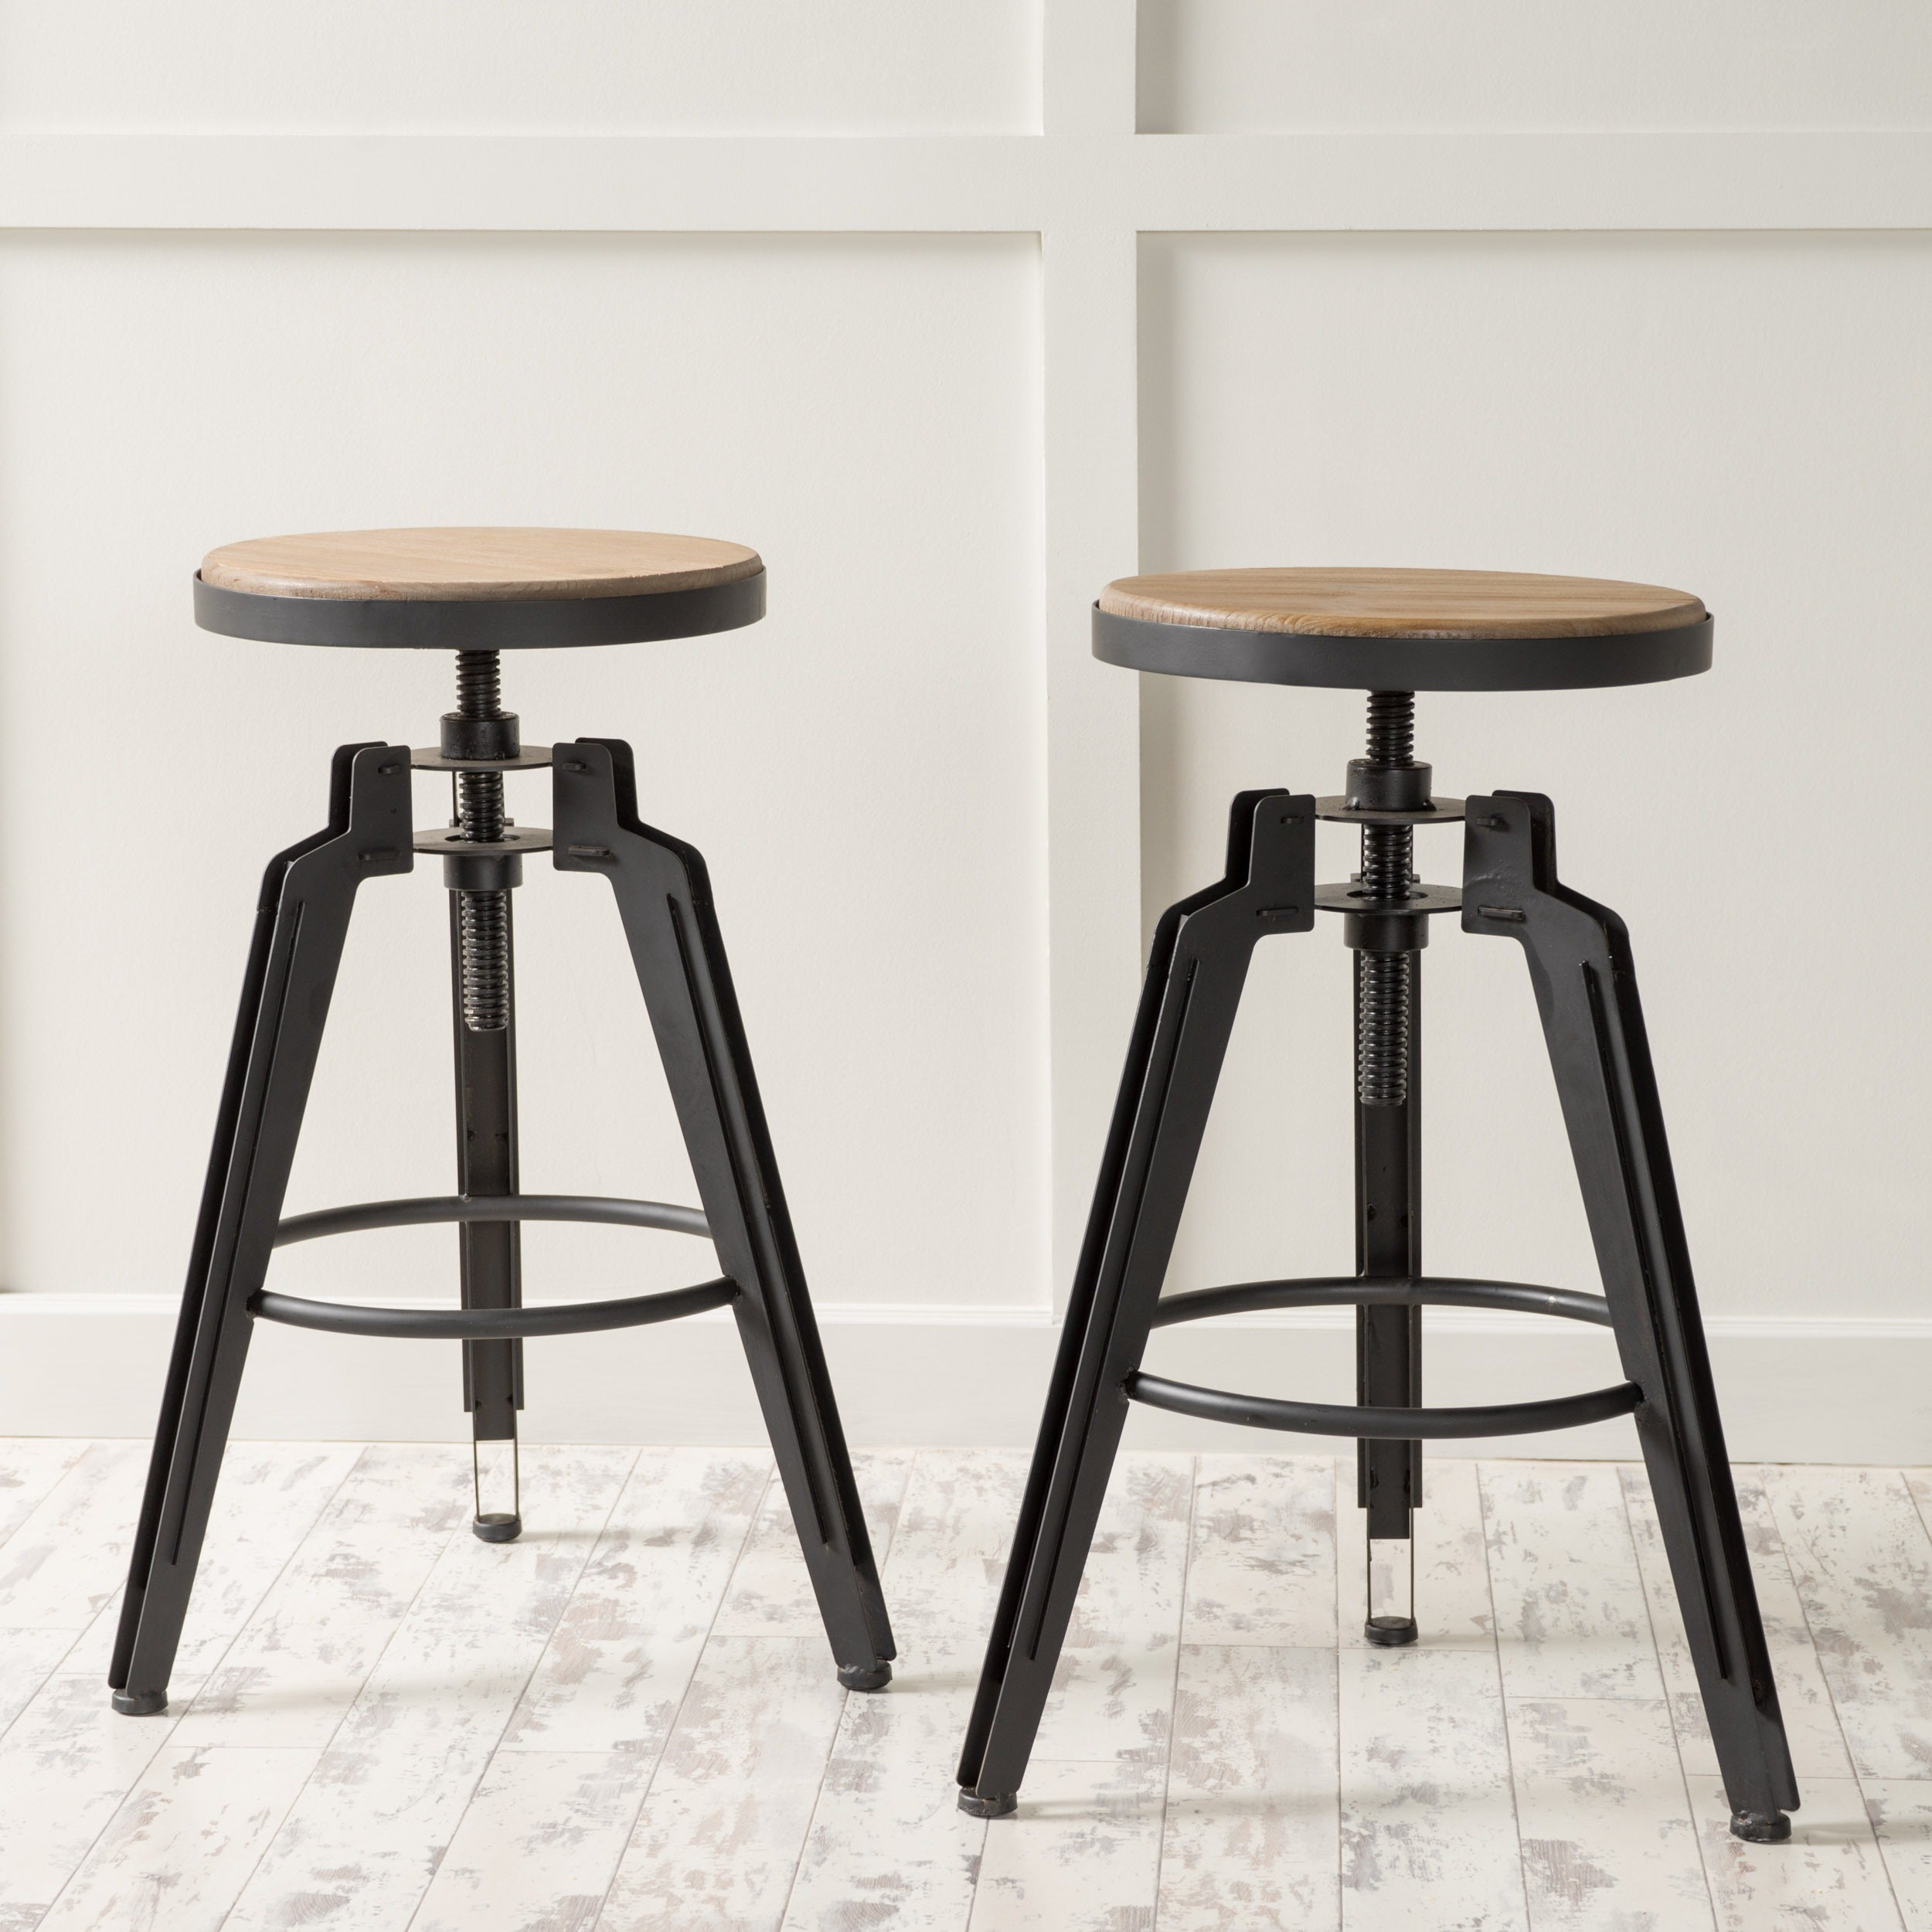 Isla 25 Inch Adjule Rustic Wood Barstool Set Of 2 By Christopher Knight Home On Free Shipping Today 12204915